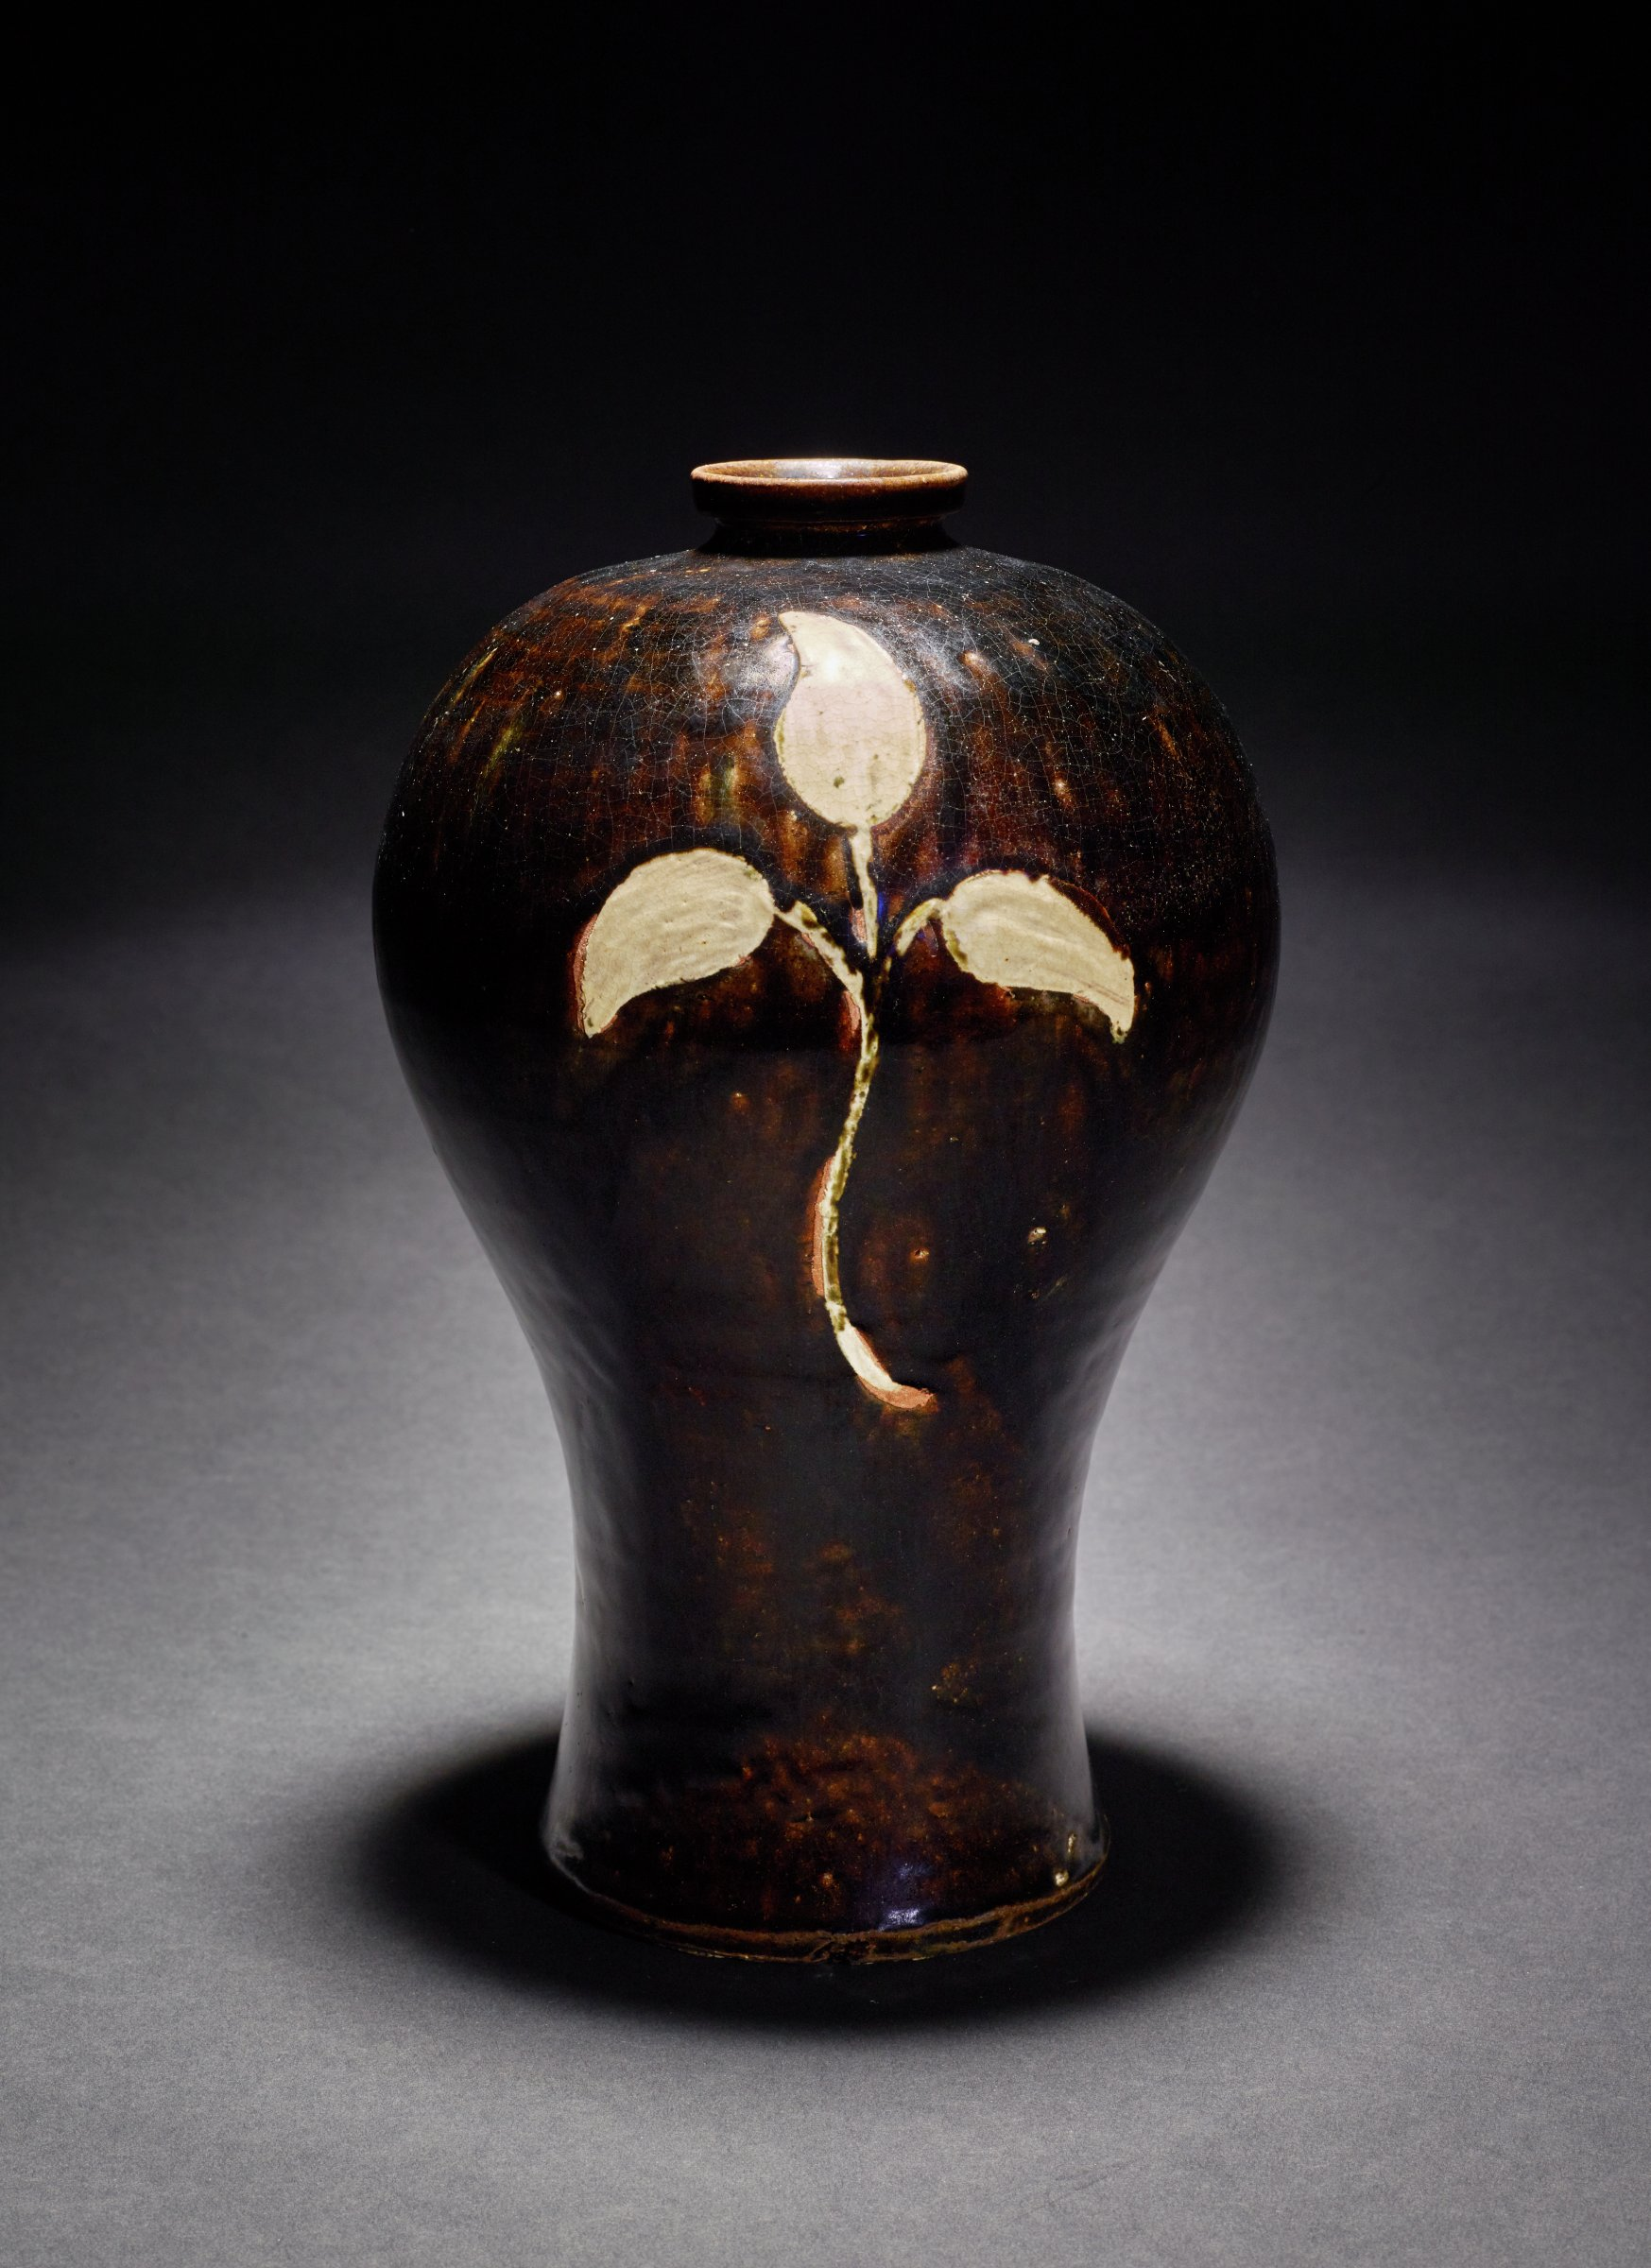 Celadon glazed tall vase with underglaze iron-brown and inlaid design of ginseng leaves. Chipped under-lip